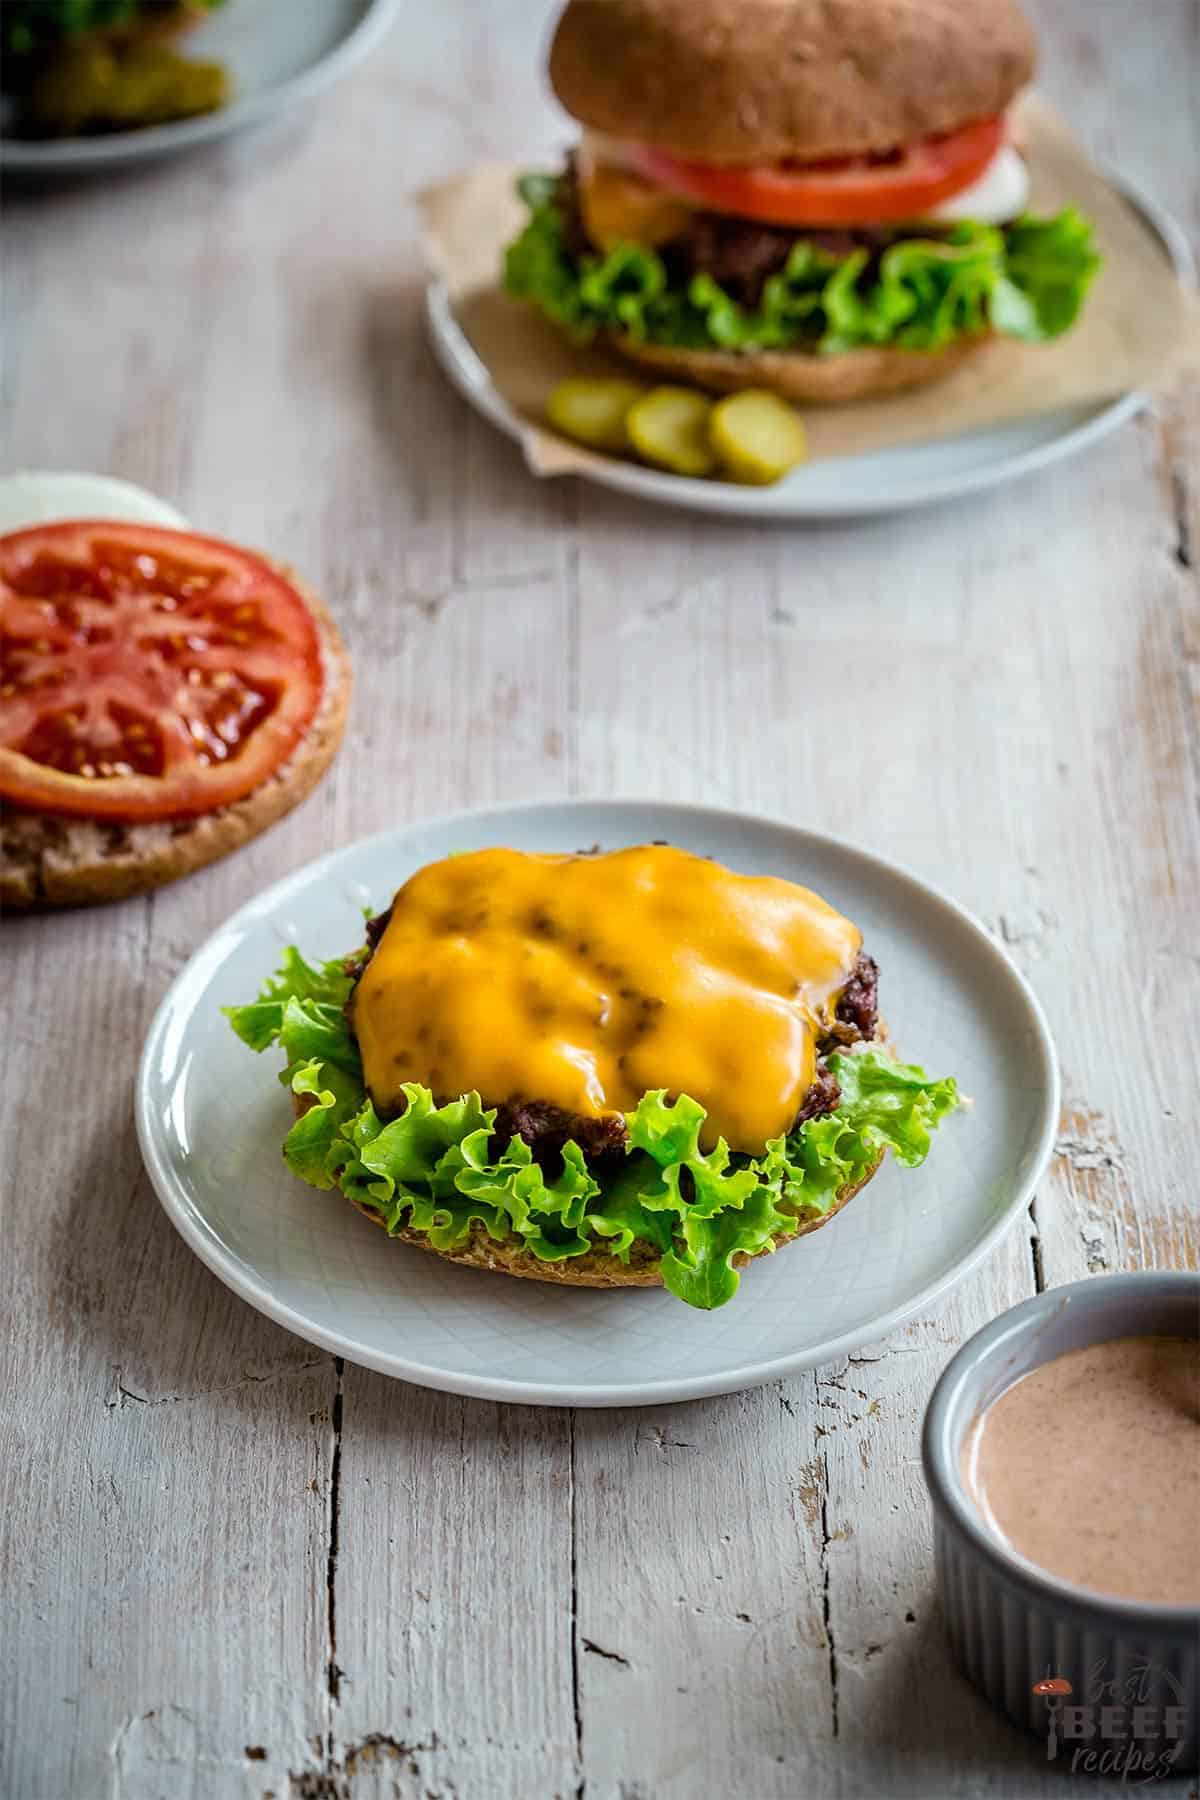 Smash burger on a plate without the top bun